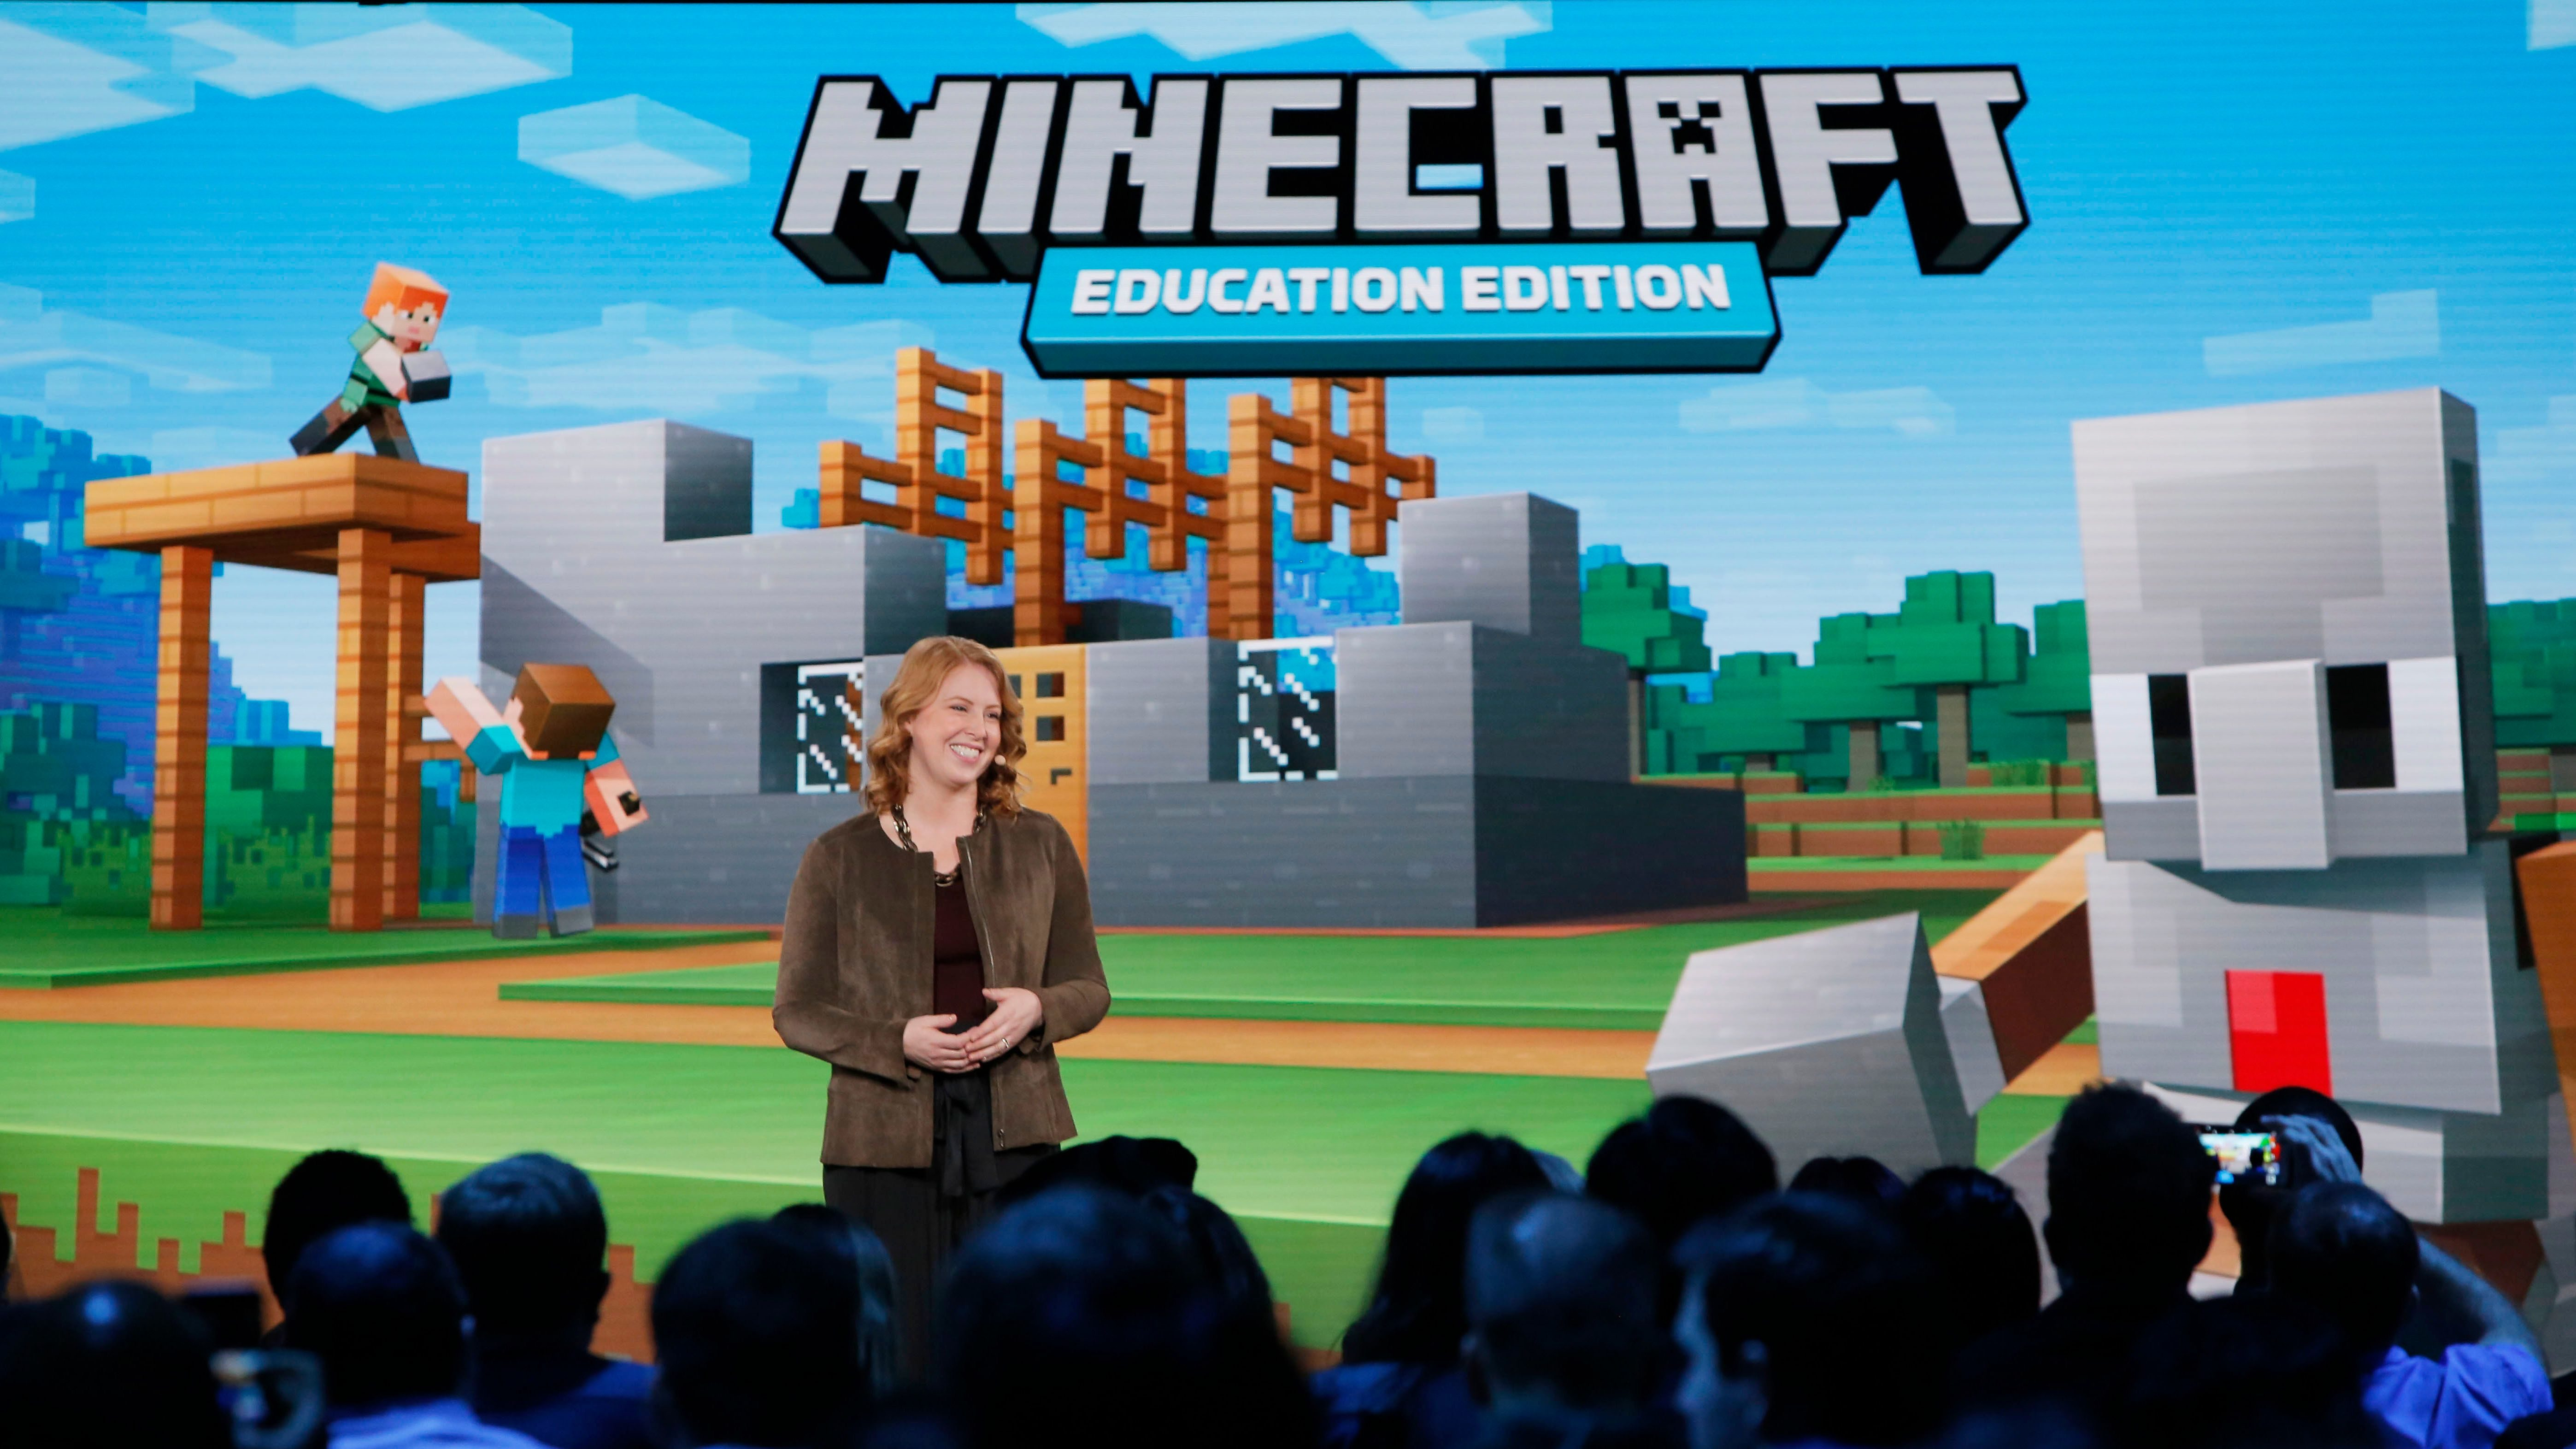 microsoft releases minecraft education edition for the ipad quartz